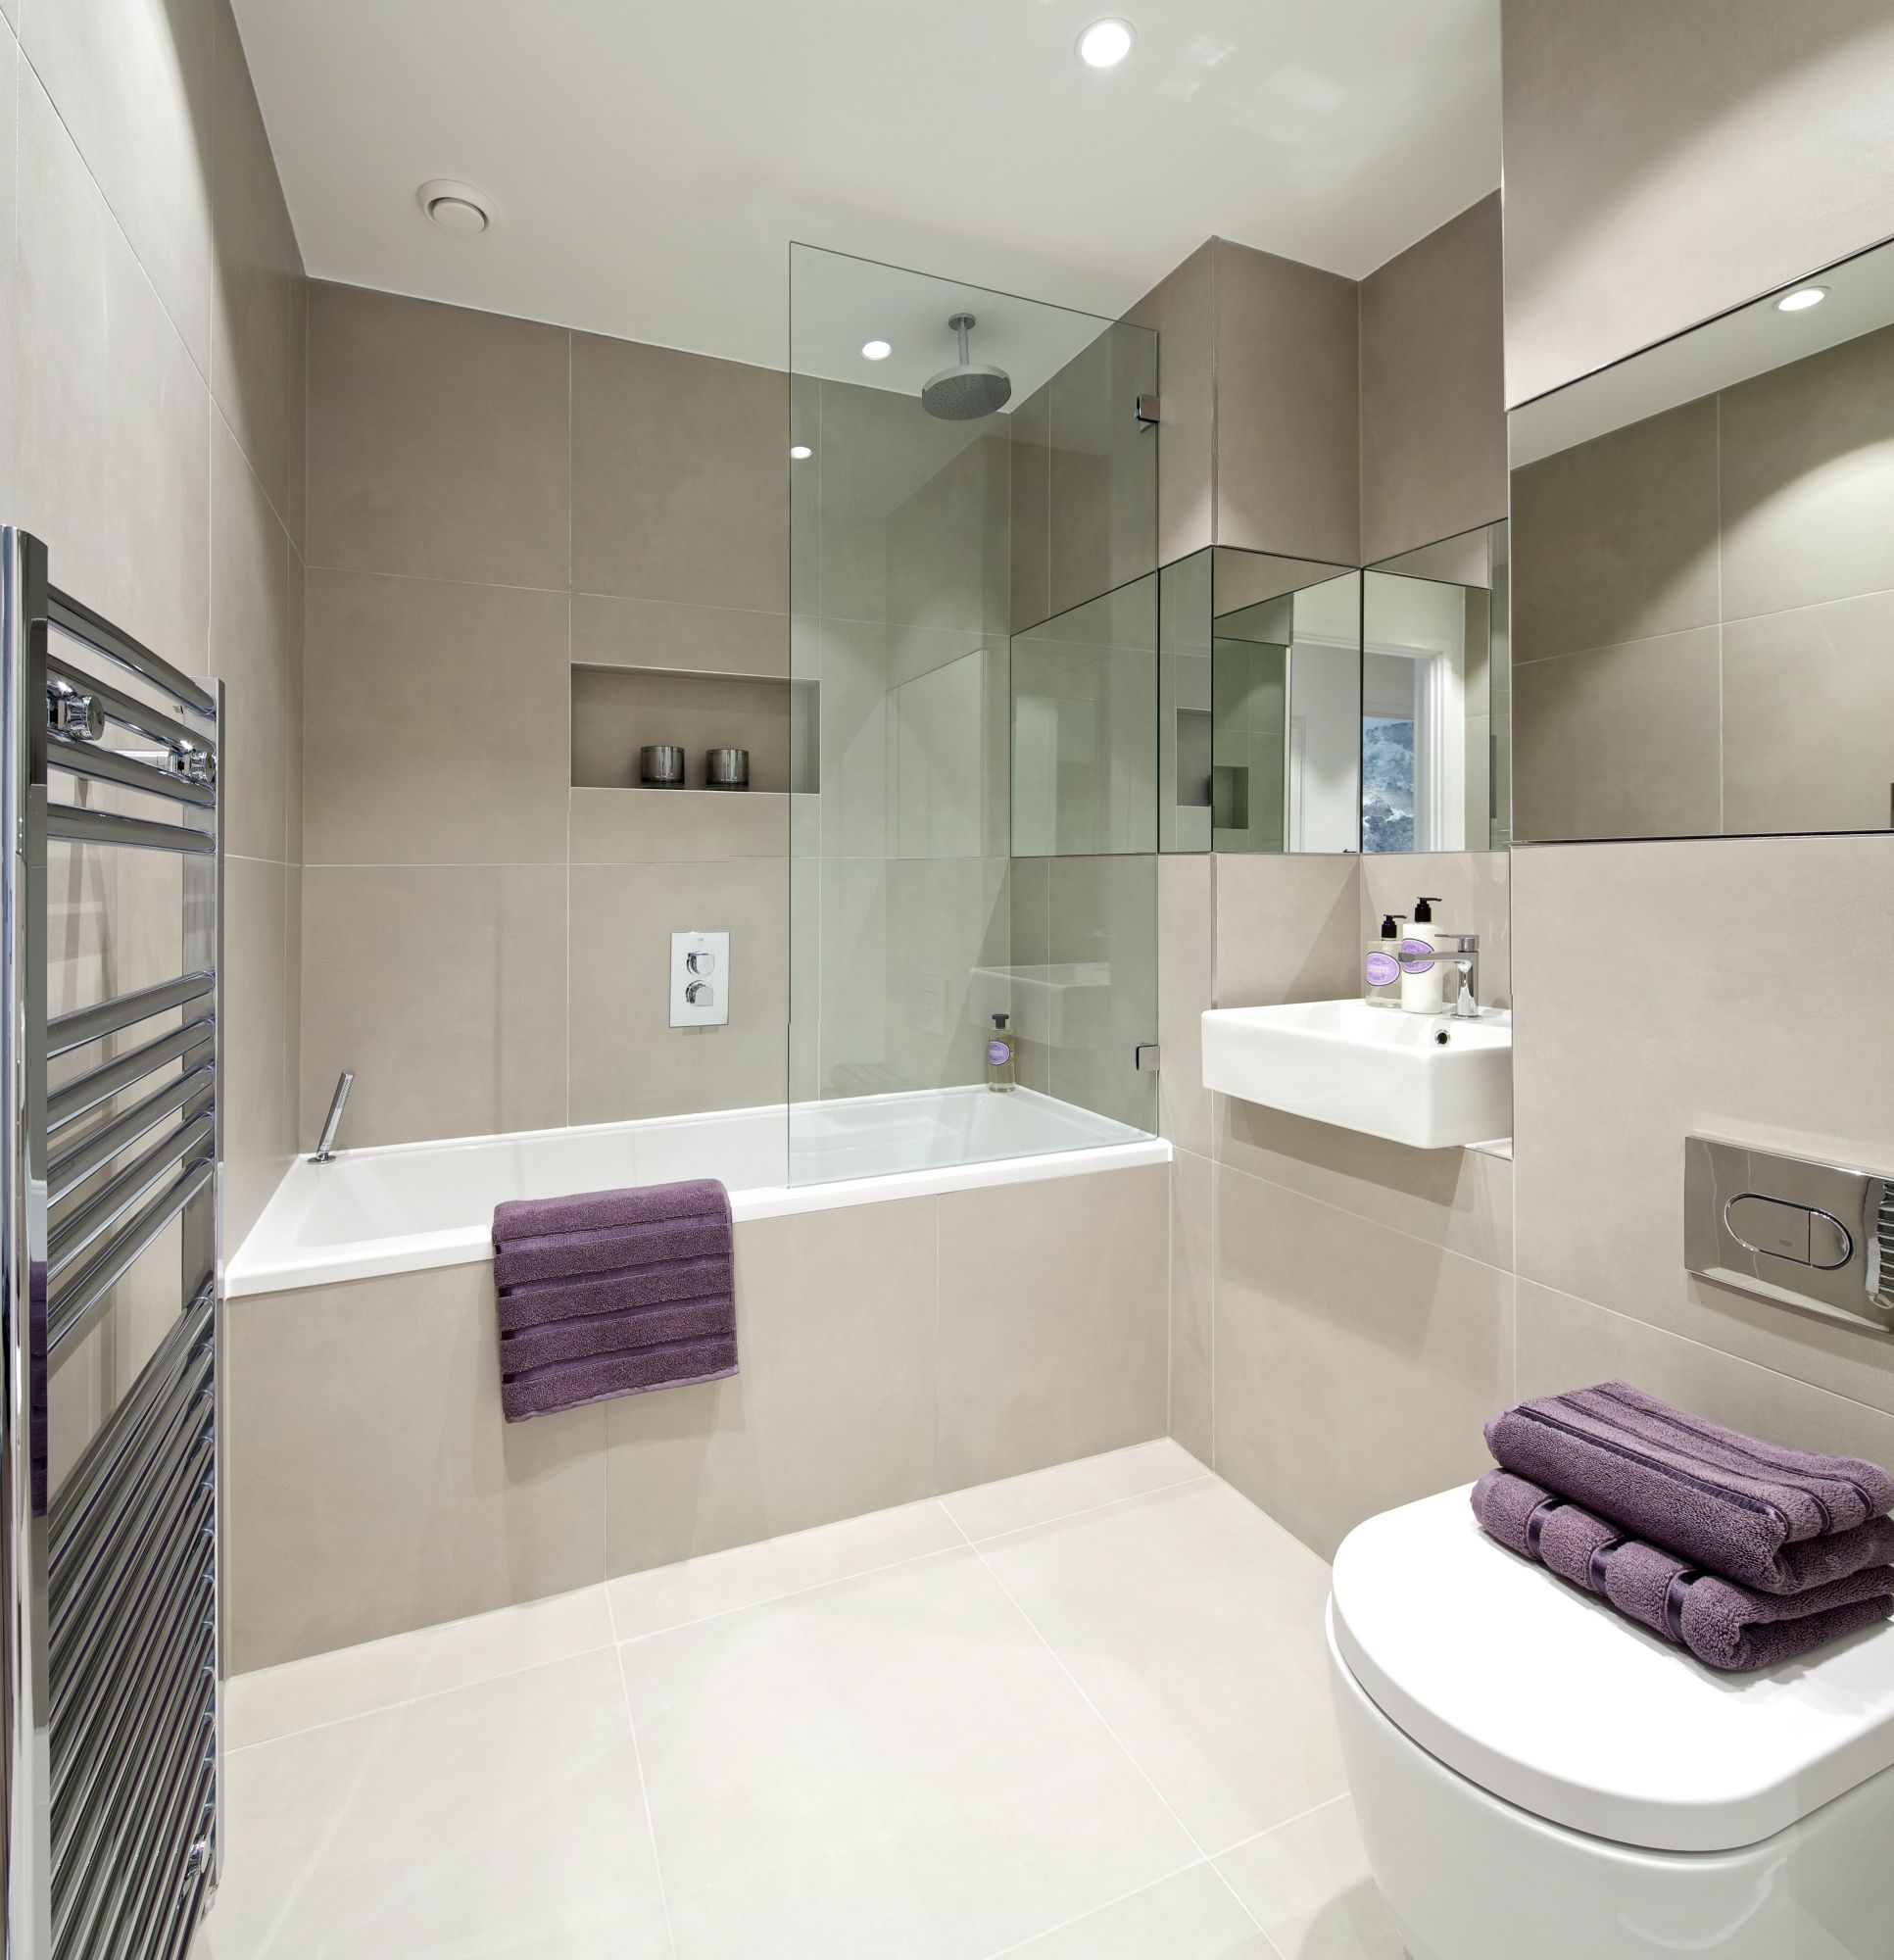 Stunning home interiors bathroom another stunning show for Bathroom interior decorating ideas